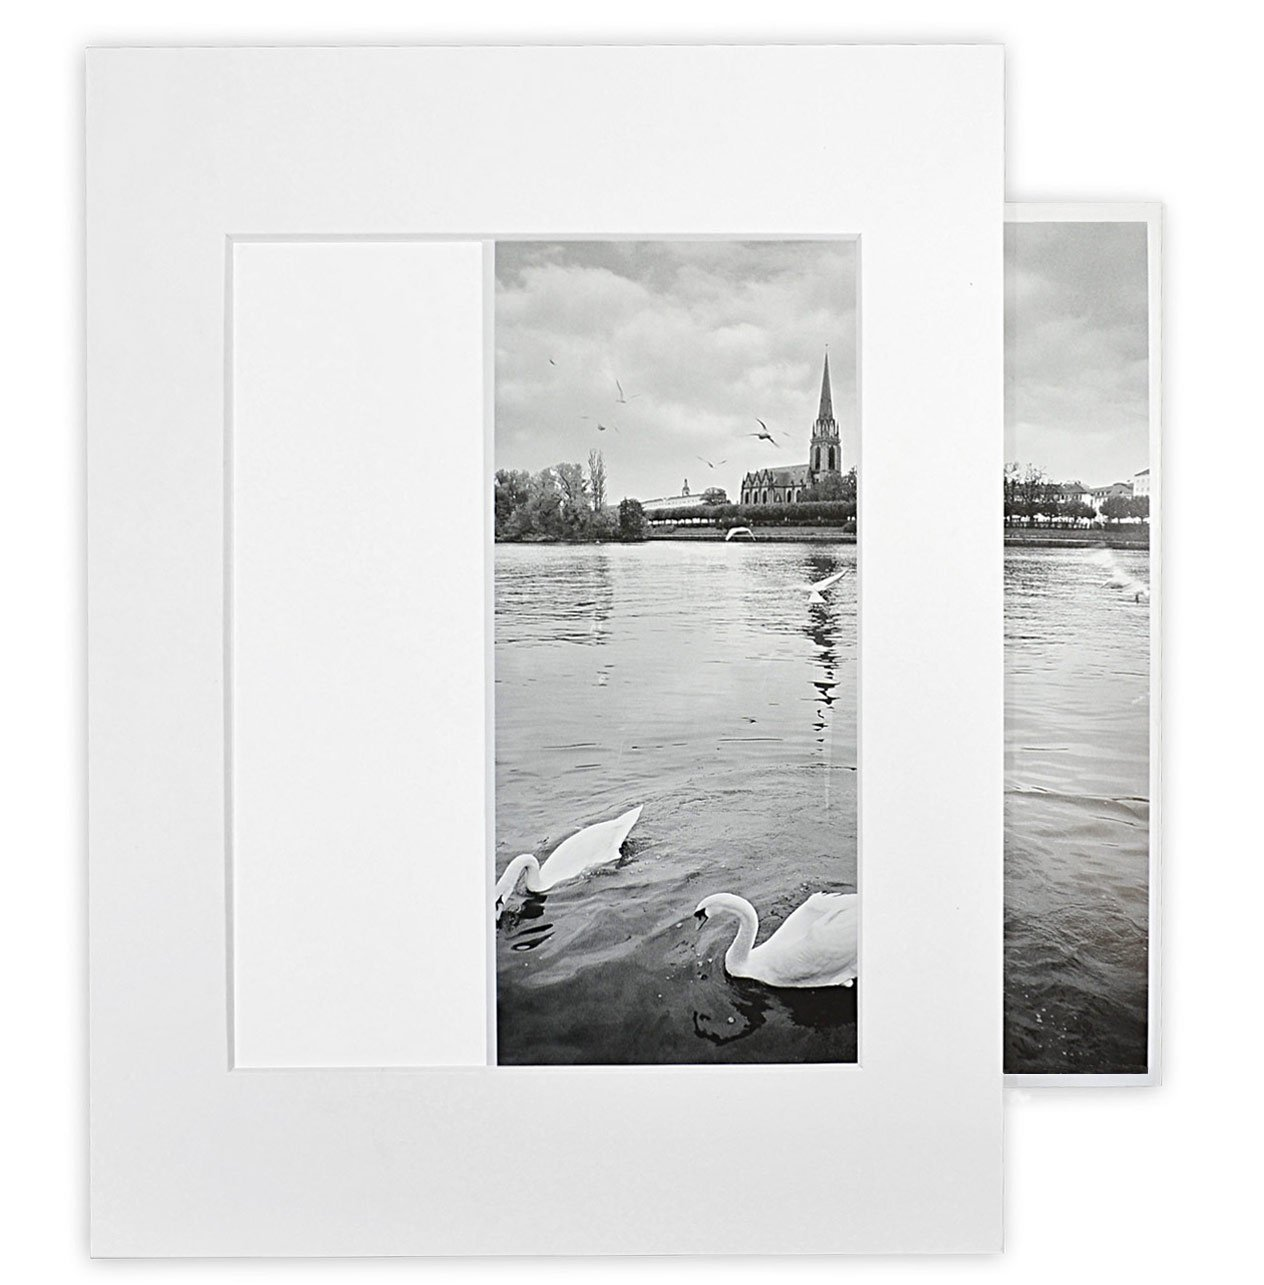 Golden State Art,Acid-Free Cardboard/Paper Frames,Pack of 25 White 11x14 Slip in Mats for 8x10 Photo with Backing Board,One Side Can Self-Assemble Picture Holder,Includes 25 Clear Bags by Golden State Art